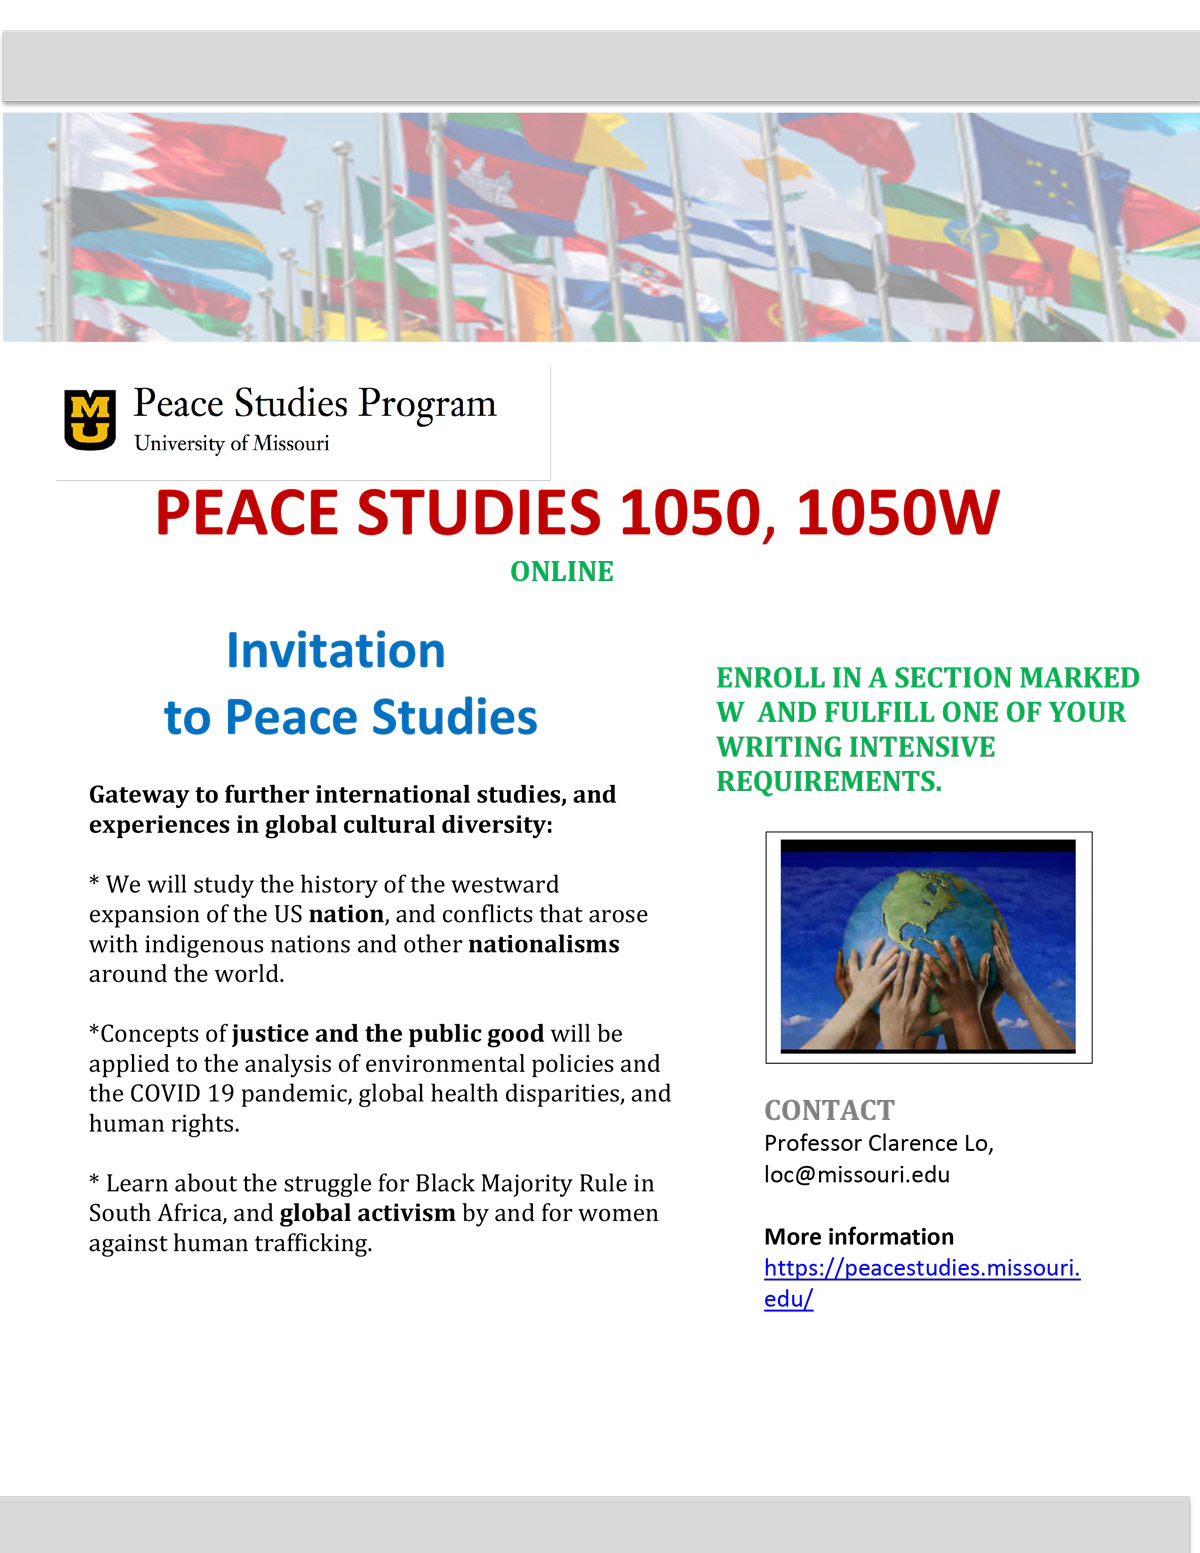 PEA_ST 1050 and 1050W:  Introduction to Peace Studies.  Professor Clarence Lo, former Director of the Peace Studies Program.    100% online